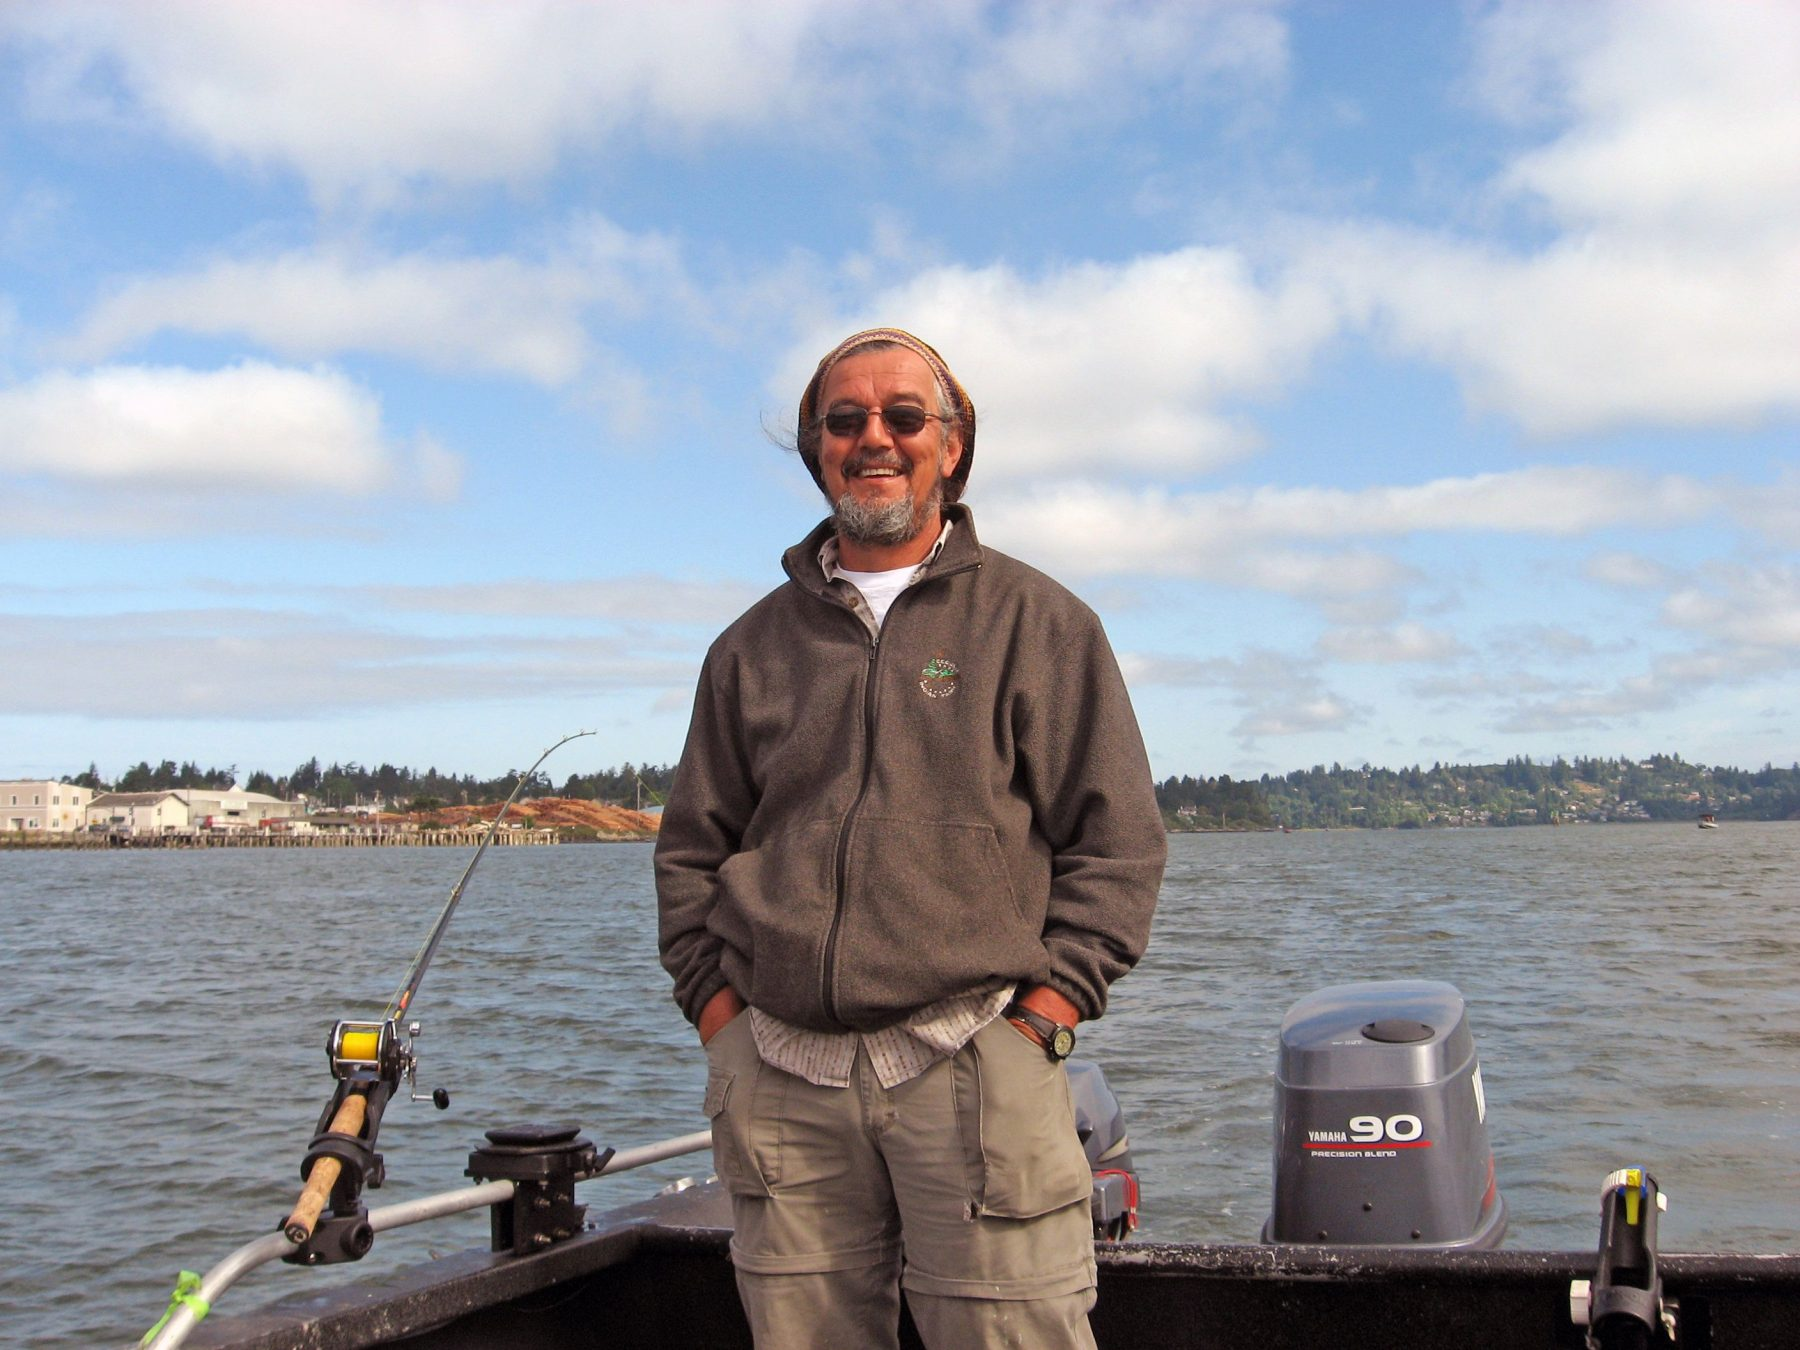 photo of a man standing on a fishing boat smiling